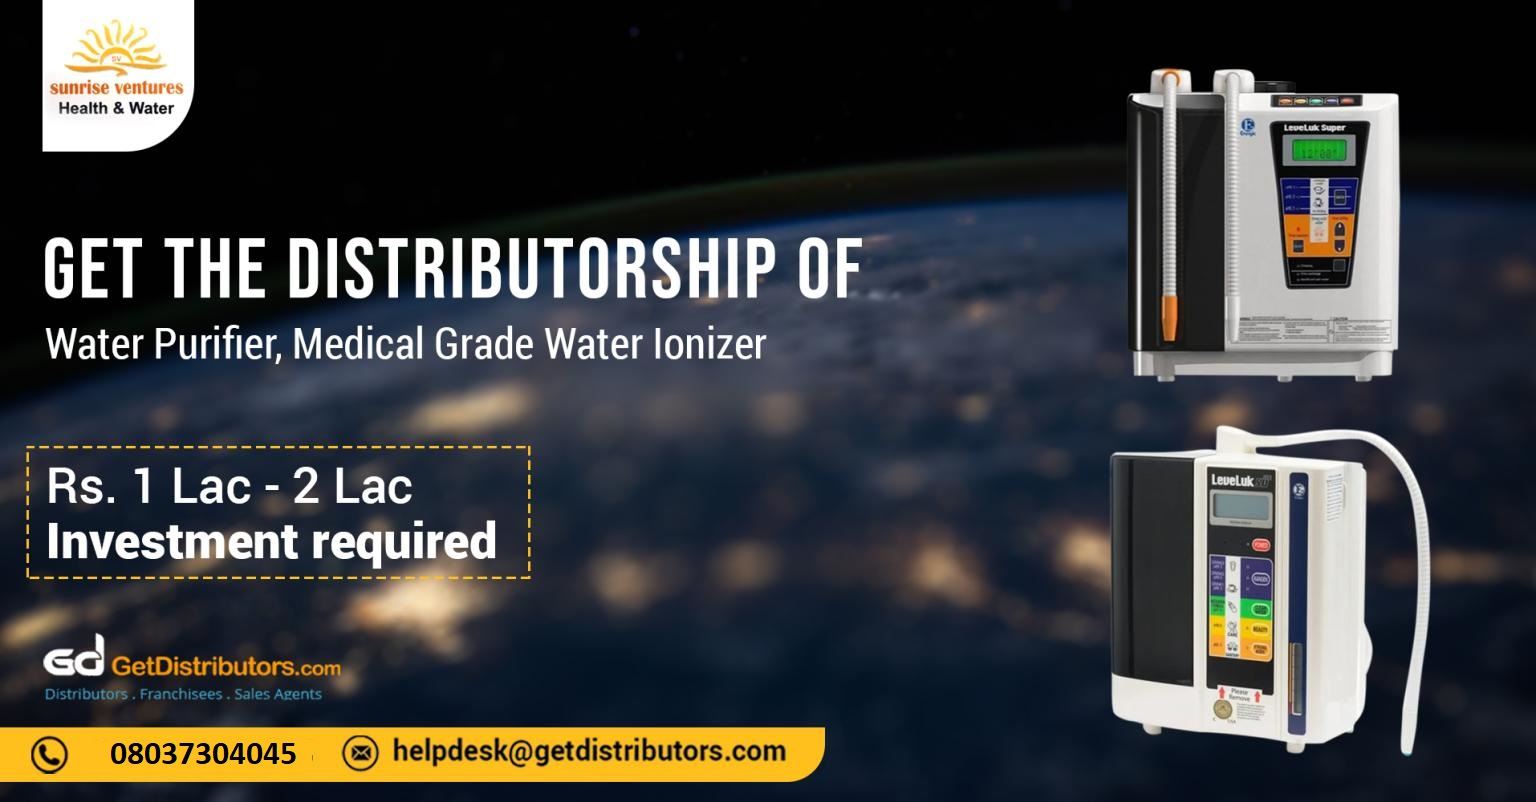 Premium Water Purifier, and Medical Grade Water Ionizer for distribution